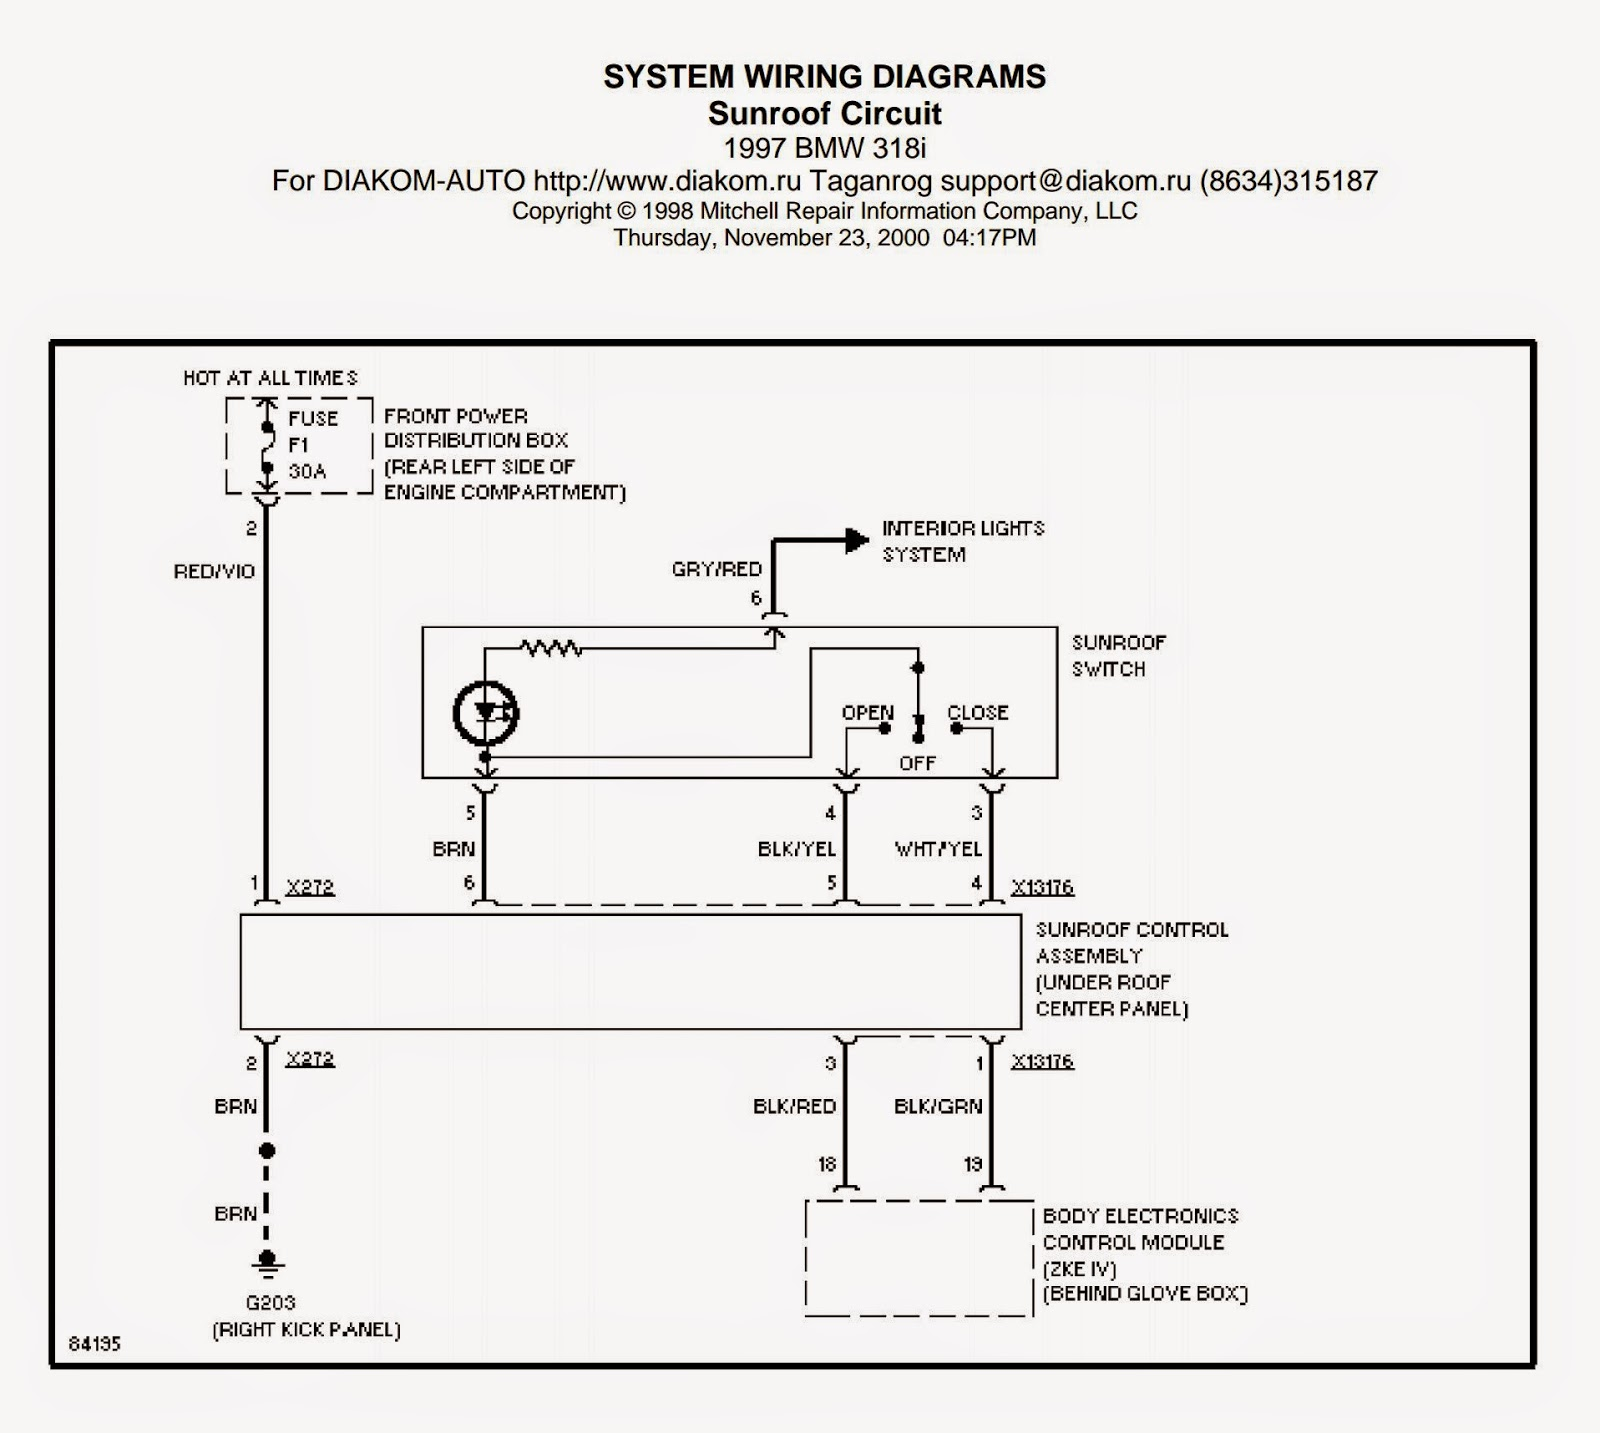 Golf 3 Sunroof Wiring Diagram Telecaster Way Switch Diagrams And Free Manual Ebooks 1997 Bmw 318i